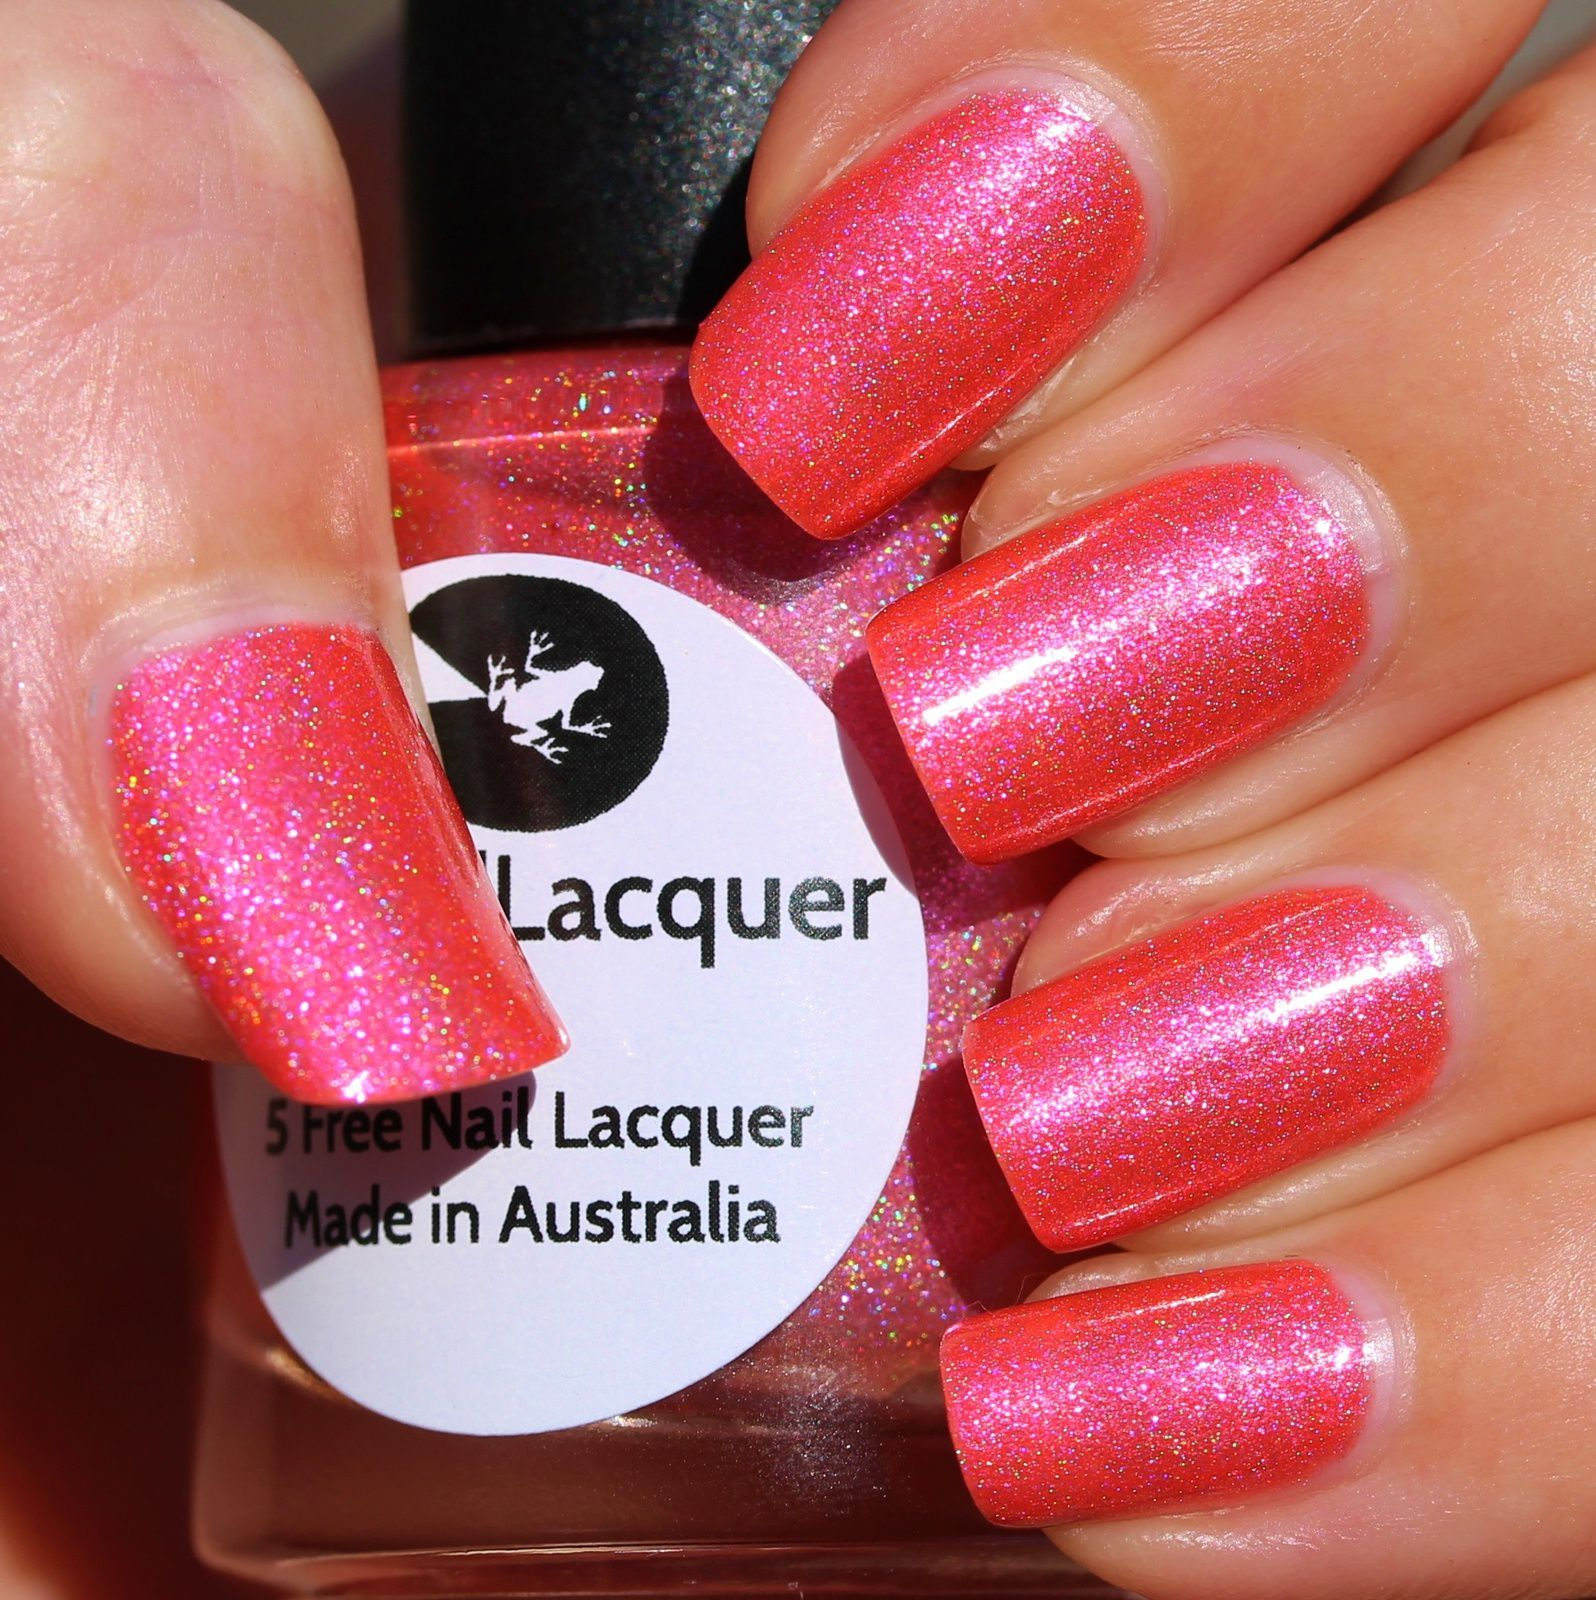 Lilypad Lacquer - Captivating Coral (2 coats, no top coat)